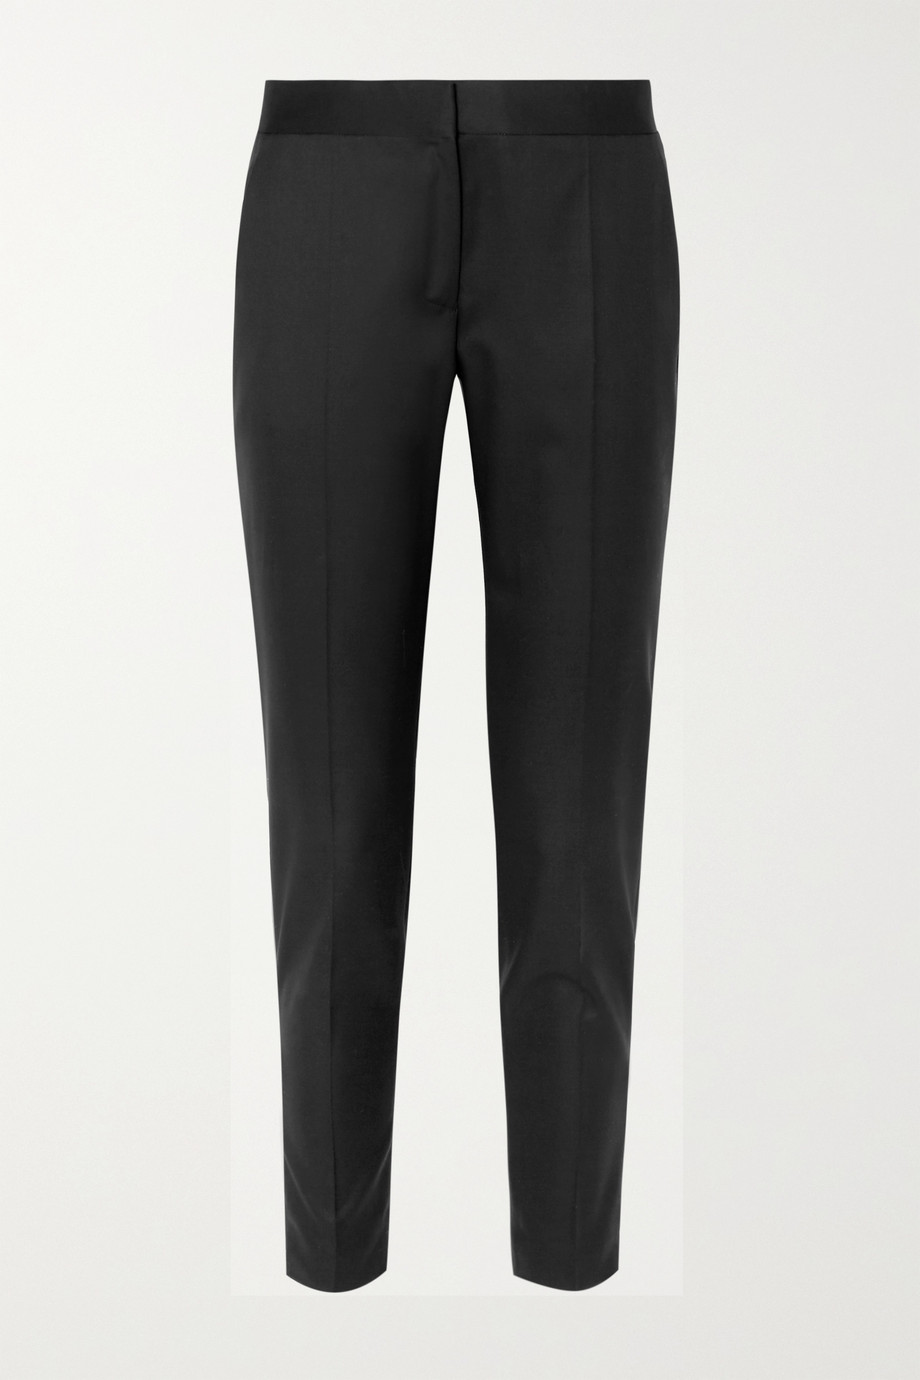 Stella McCartney Vivian zip-detailed wool-twill straight-leg pants